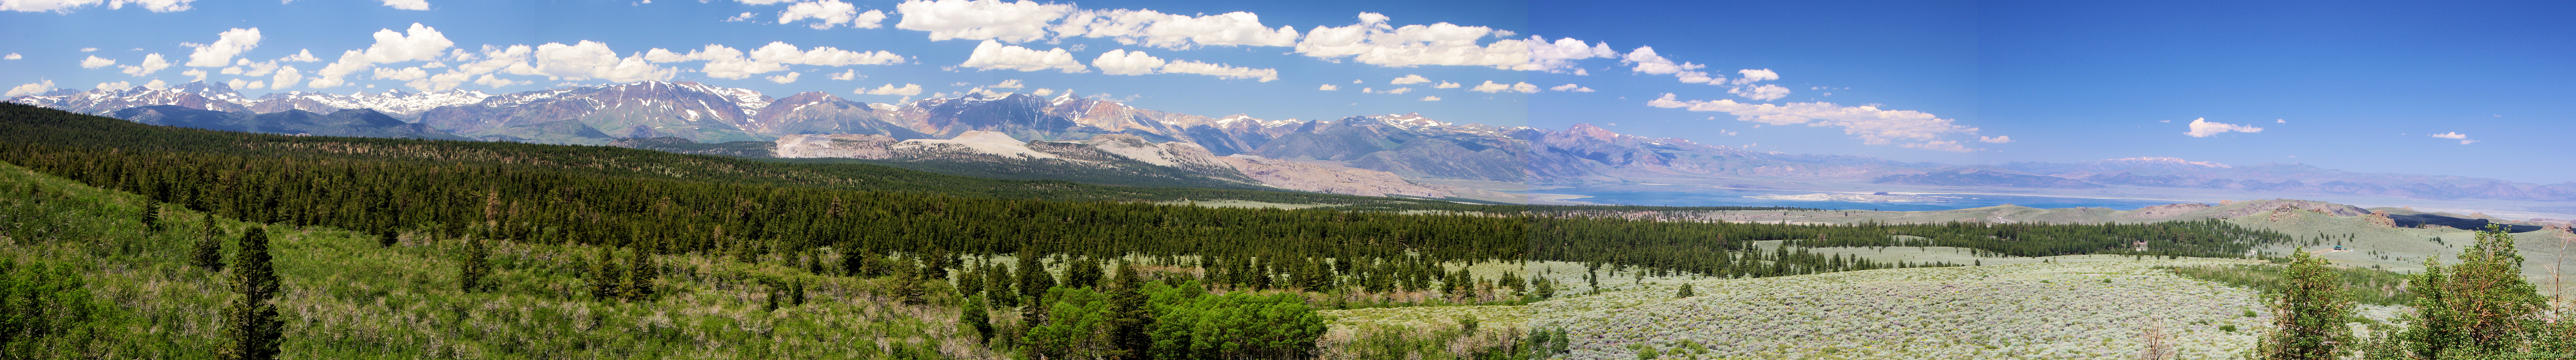 California, Mono County, Mono Lake basin